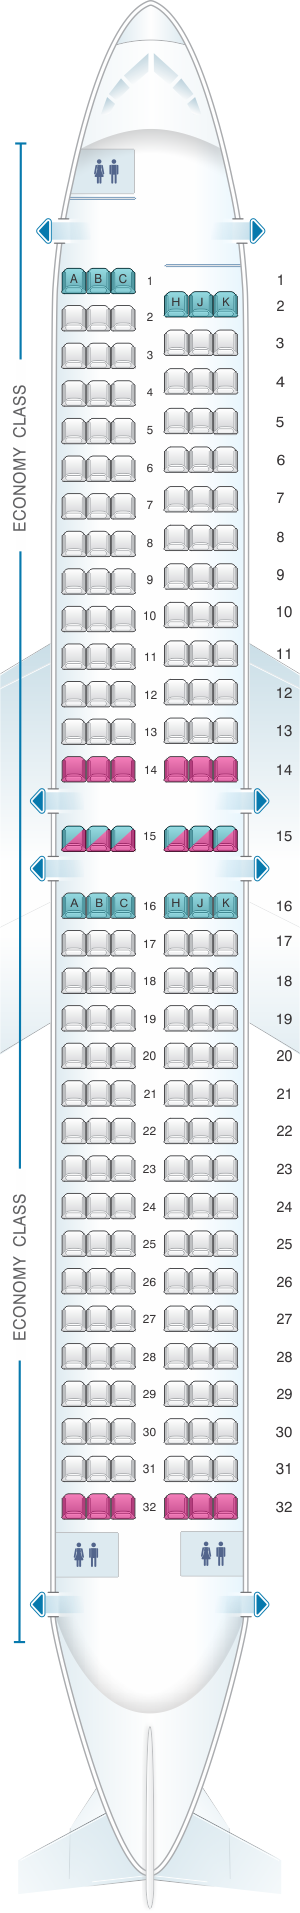 Seat map for Air Transat Boeing 737-800 US and South